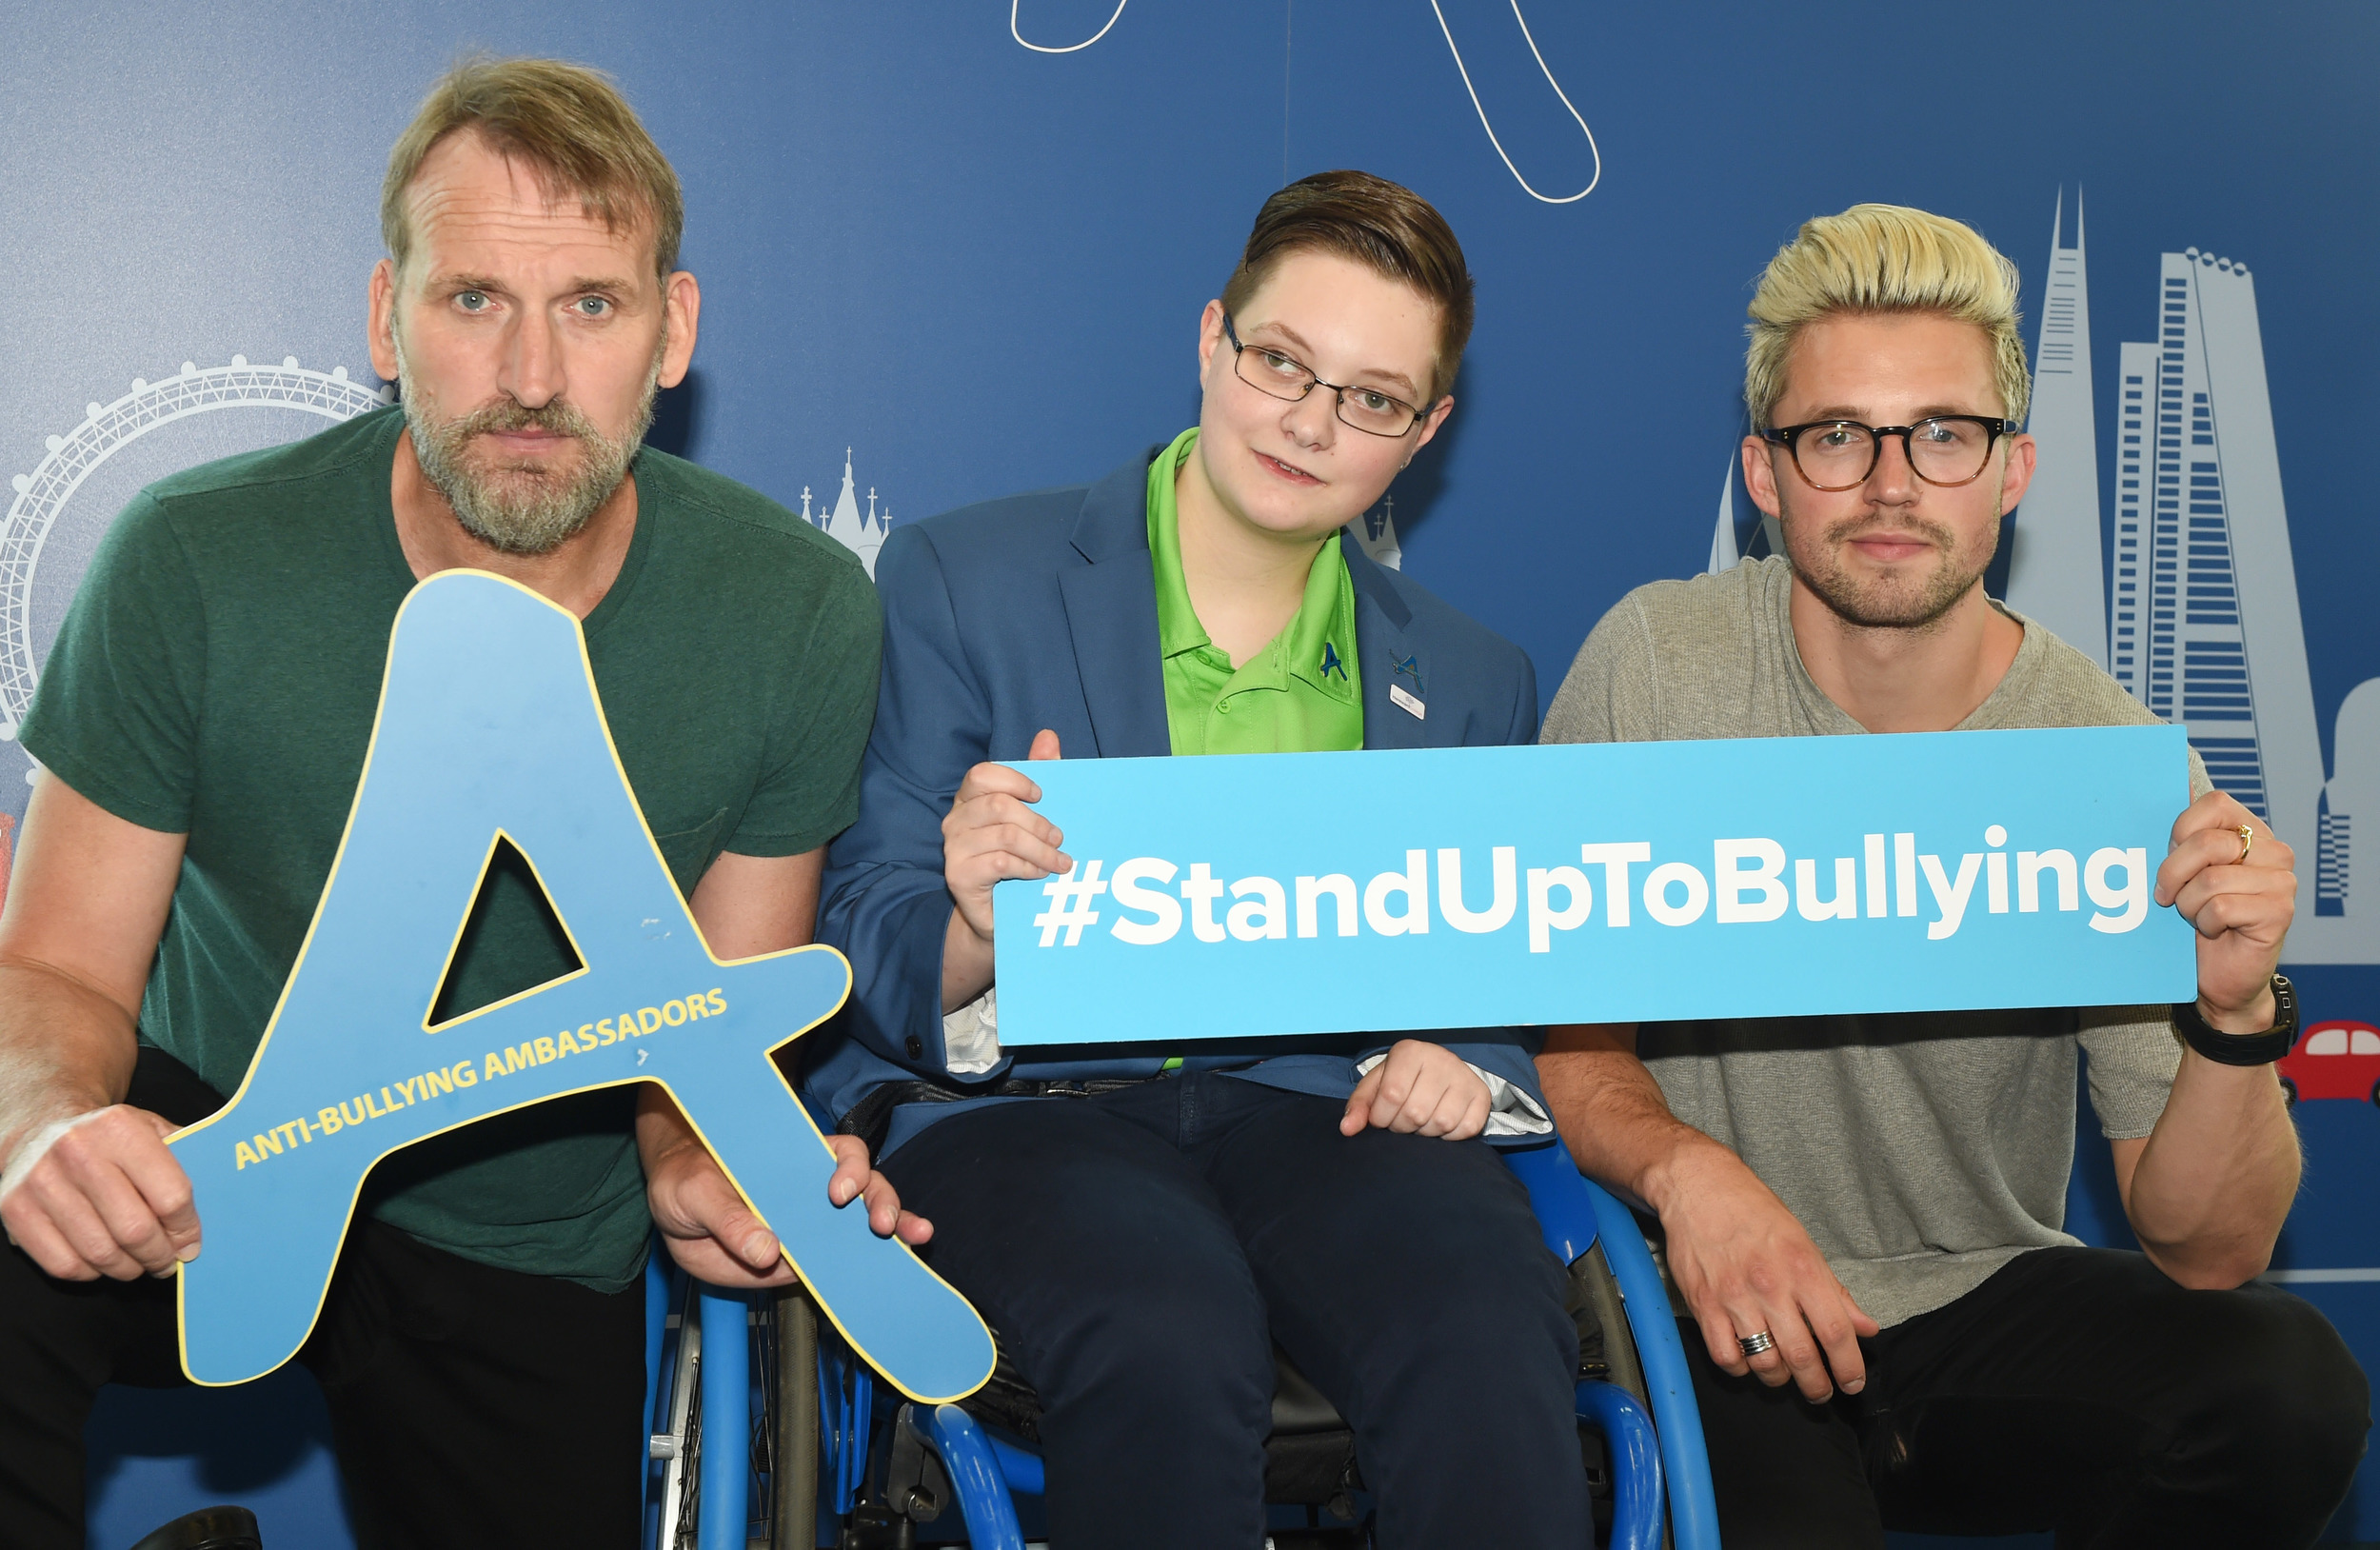 5th July  2016Stand Up To Bullying Day  held at Facebook, 10 Brock Street, London. For more information please go to www.standuptobullying.co.ukHere: Christopher Ecclestone,Joey Mander and Marcus ButlerCredit: Justin Goff/GoffPhotos.com